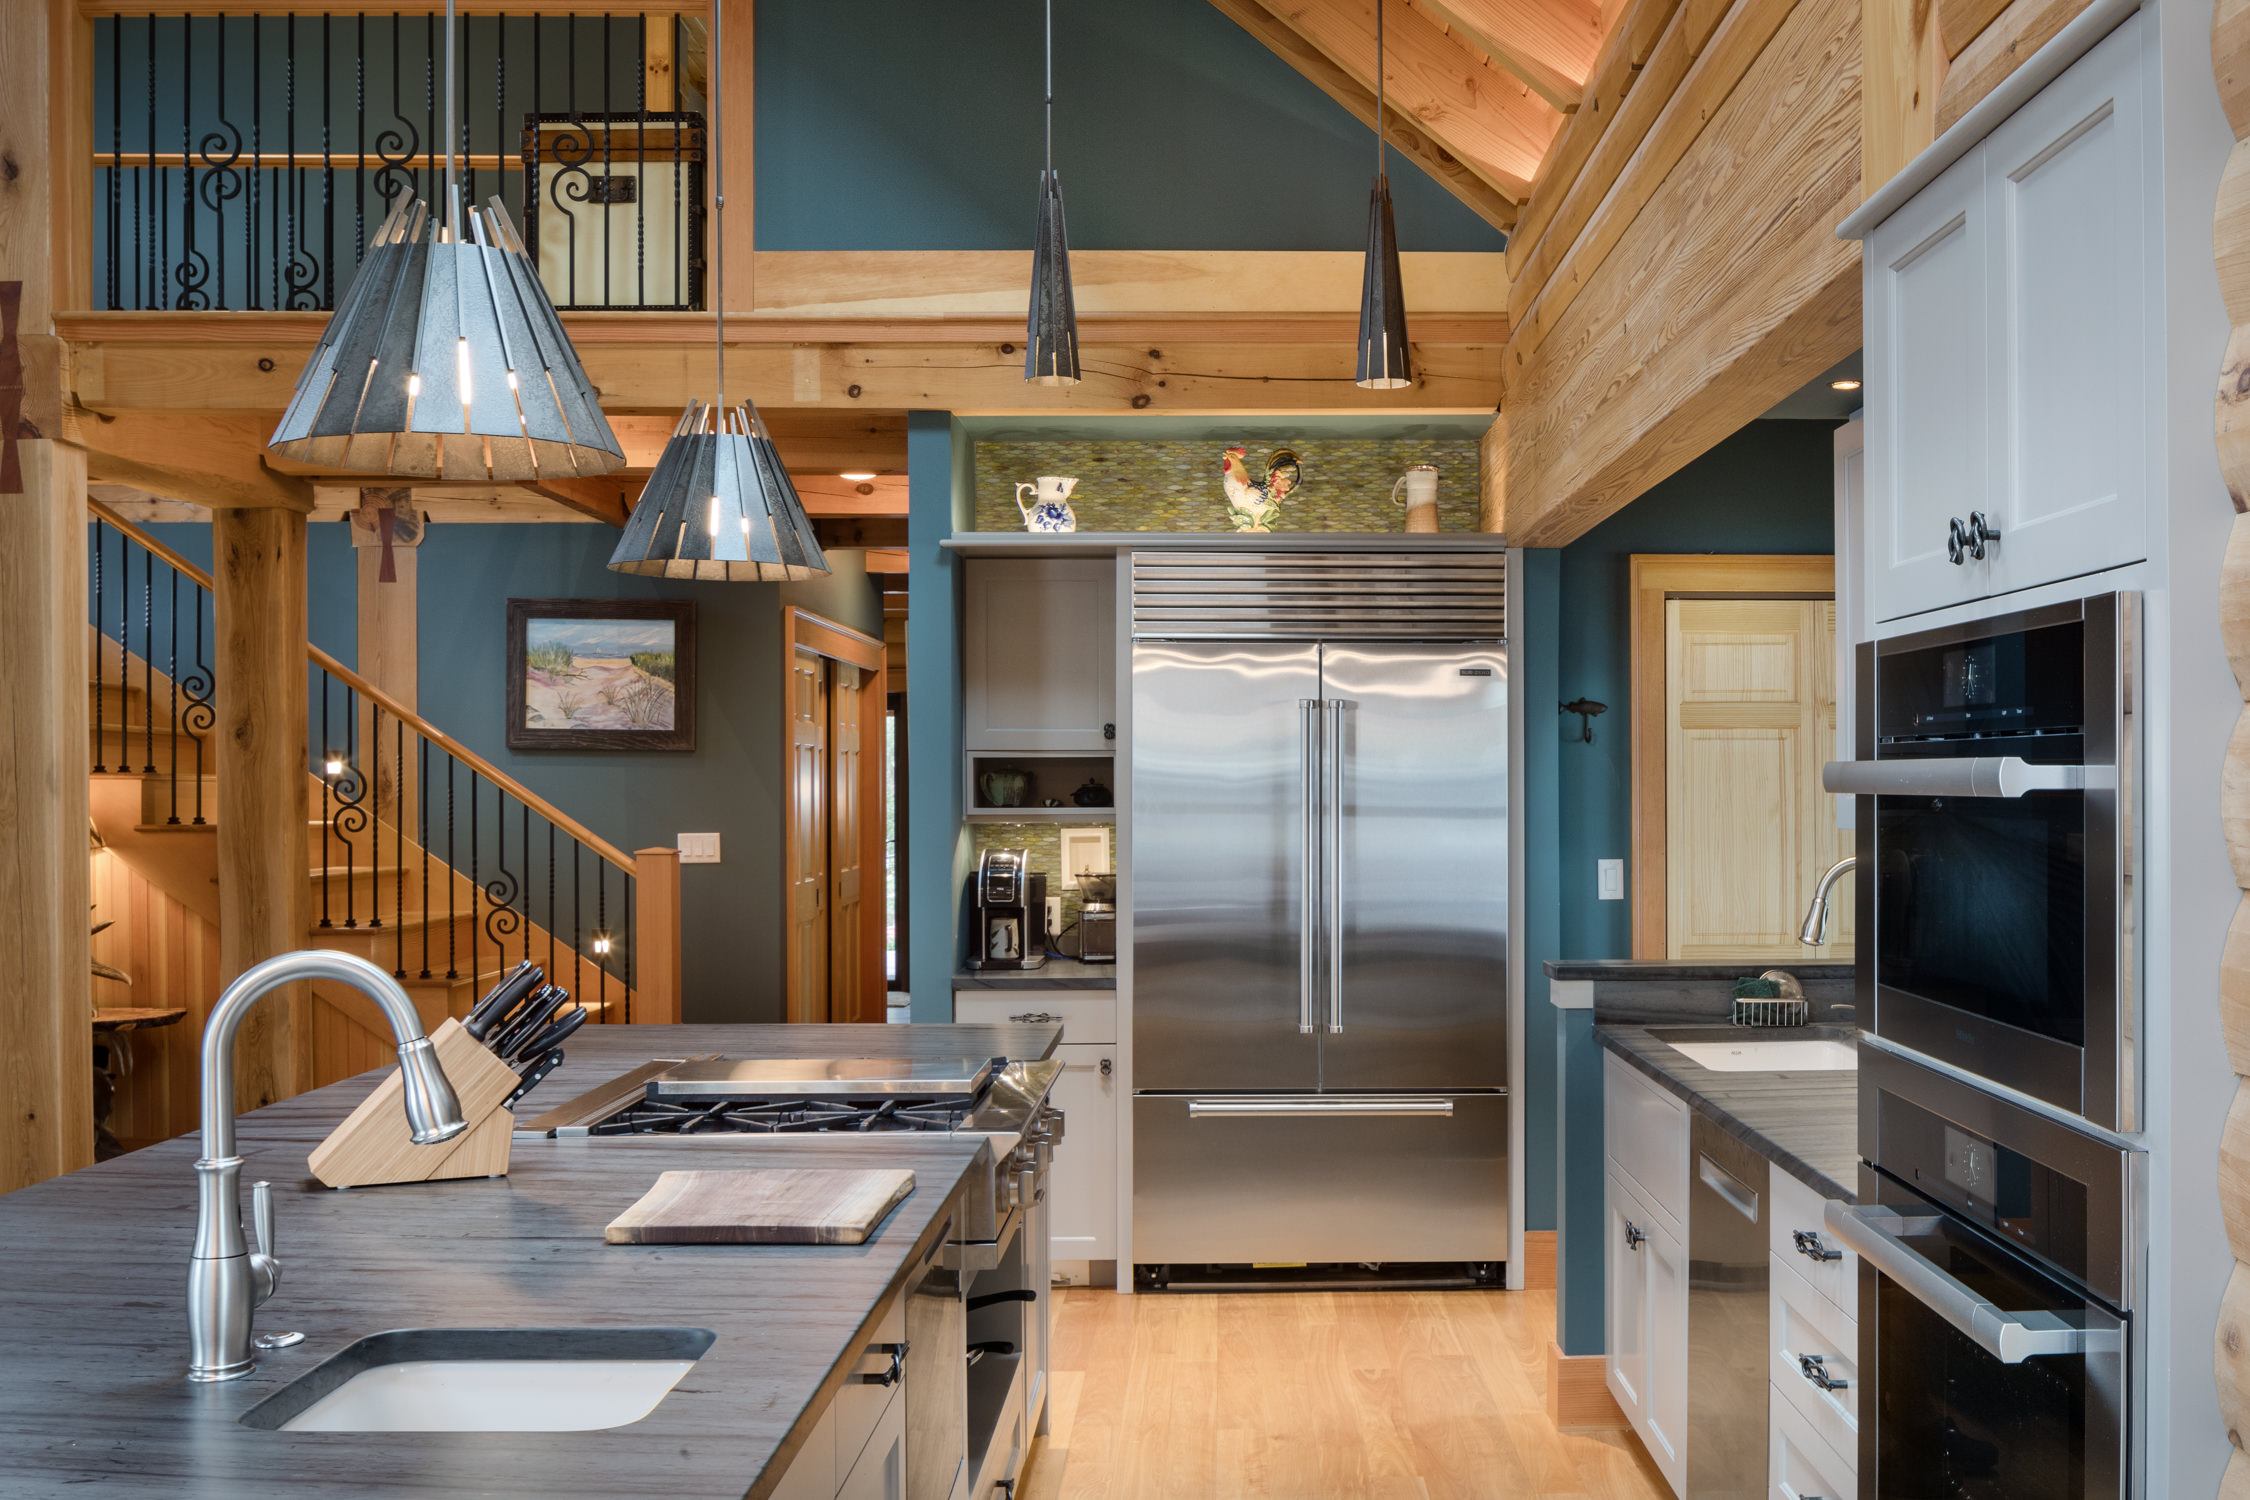 Photo of an Adirondack style lake house renovation including an open kitchen and living concept, timber framing and wood paneling throughout designed by Wiemann Lamphere Architects and photographed by Vermont photographer Stina Booth of Studio SB.,